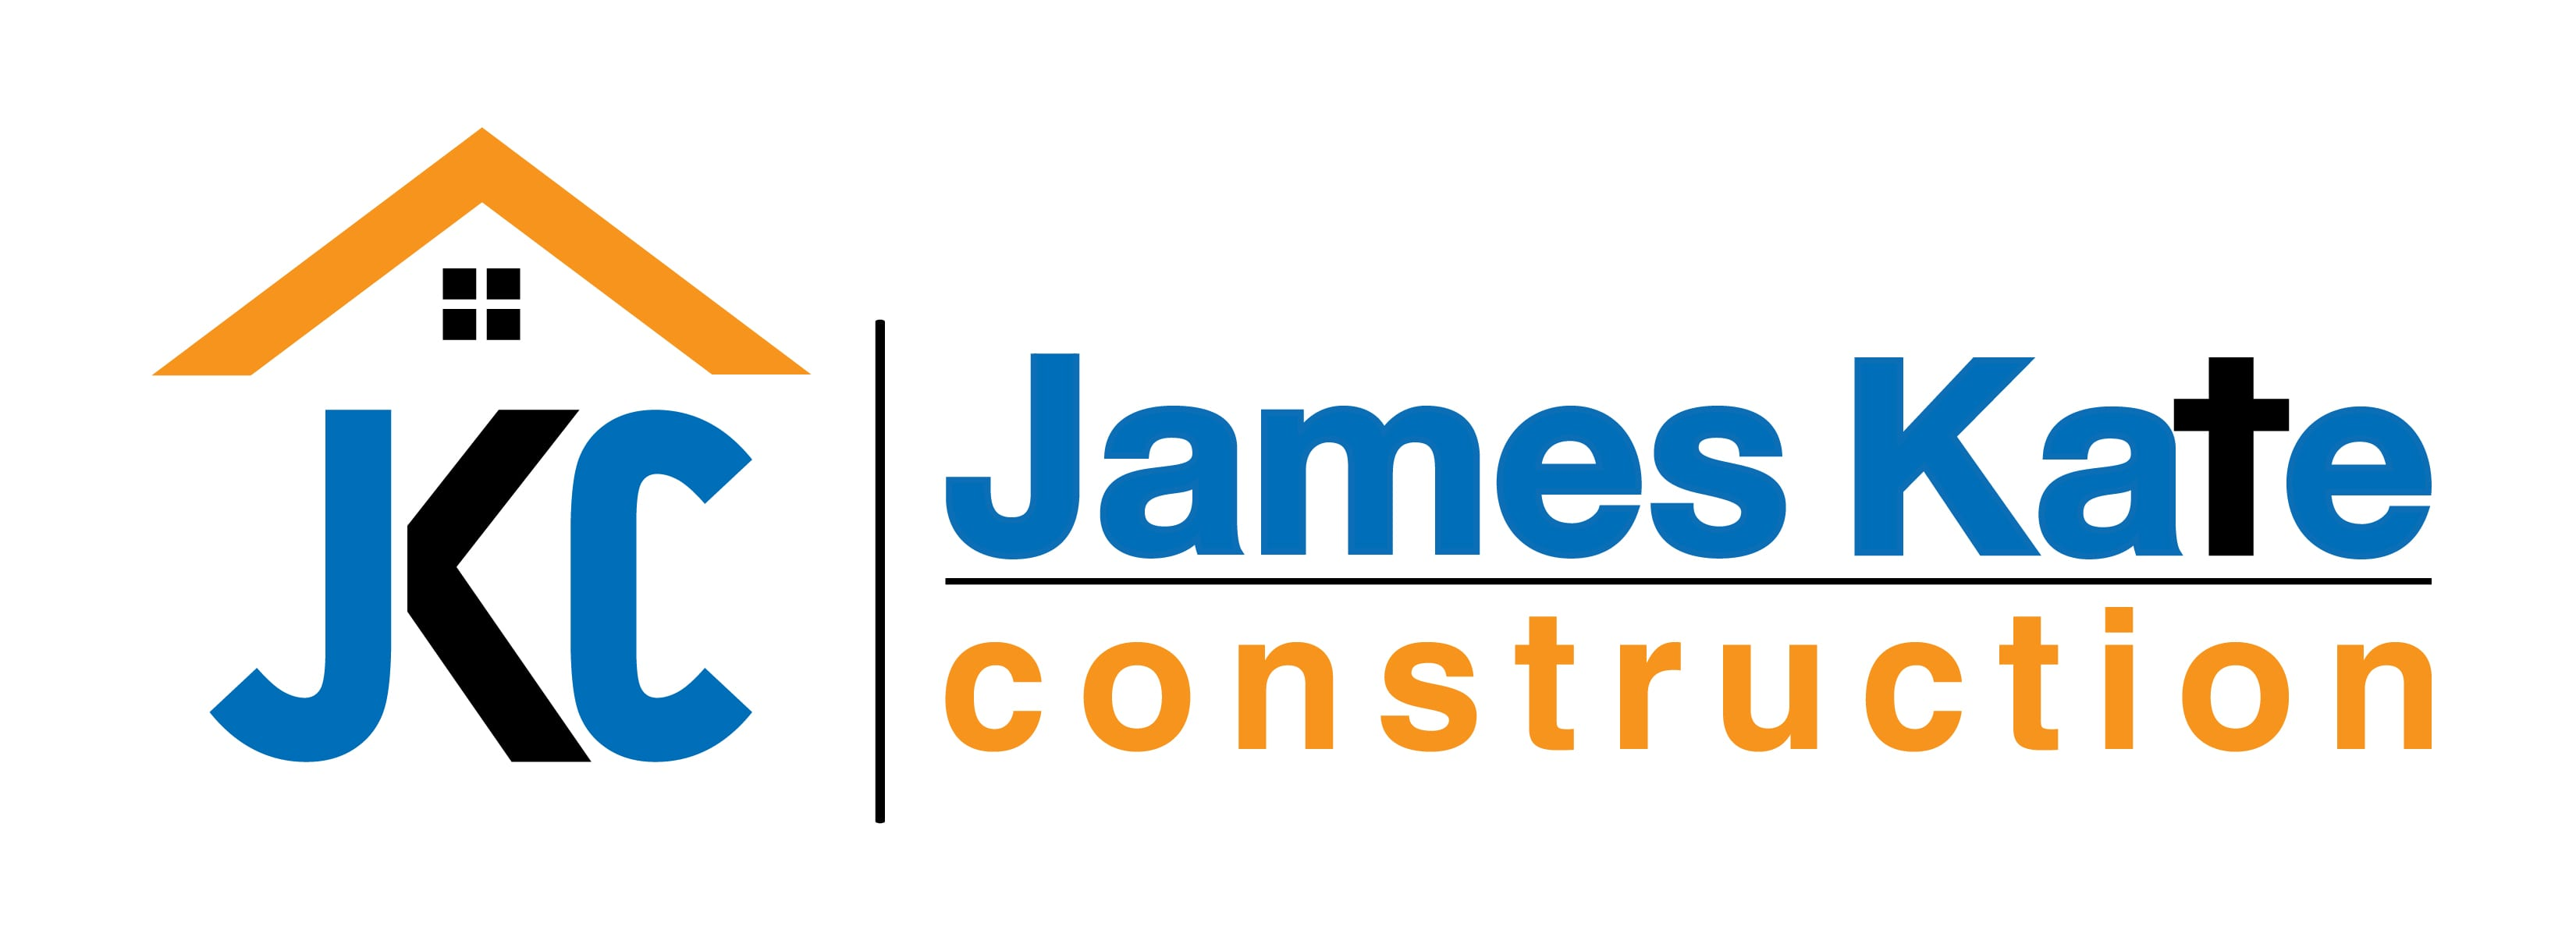 James Kate Construction: Roofing, Painting & Windows is Offering Quality Roofing Repairs And Replacement in Plano, Texas